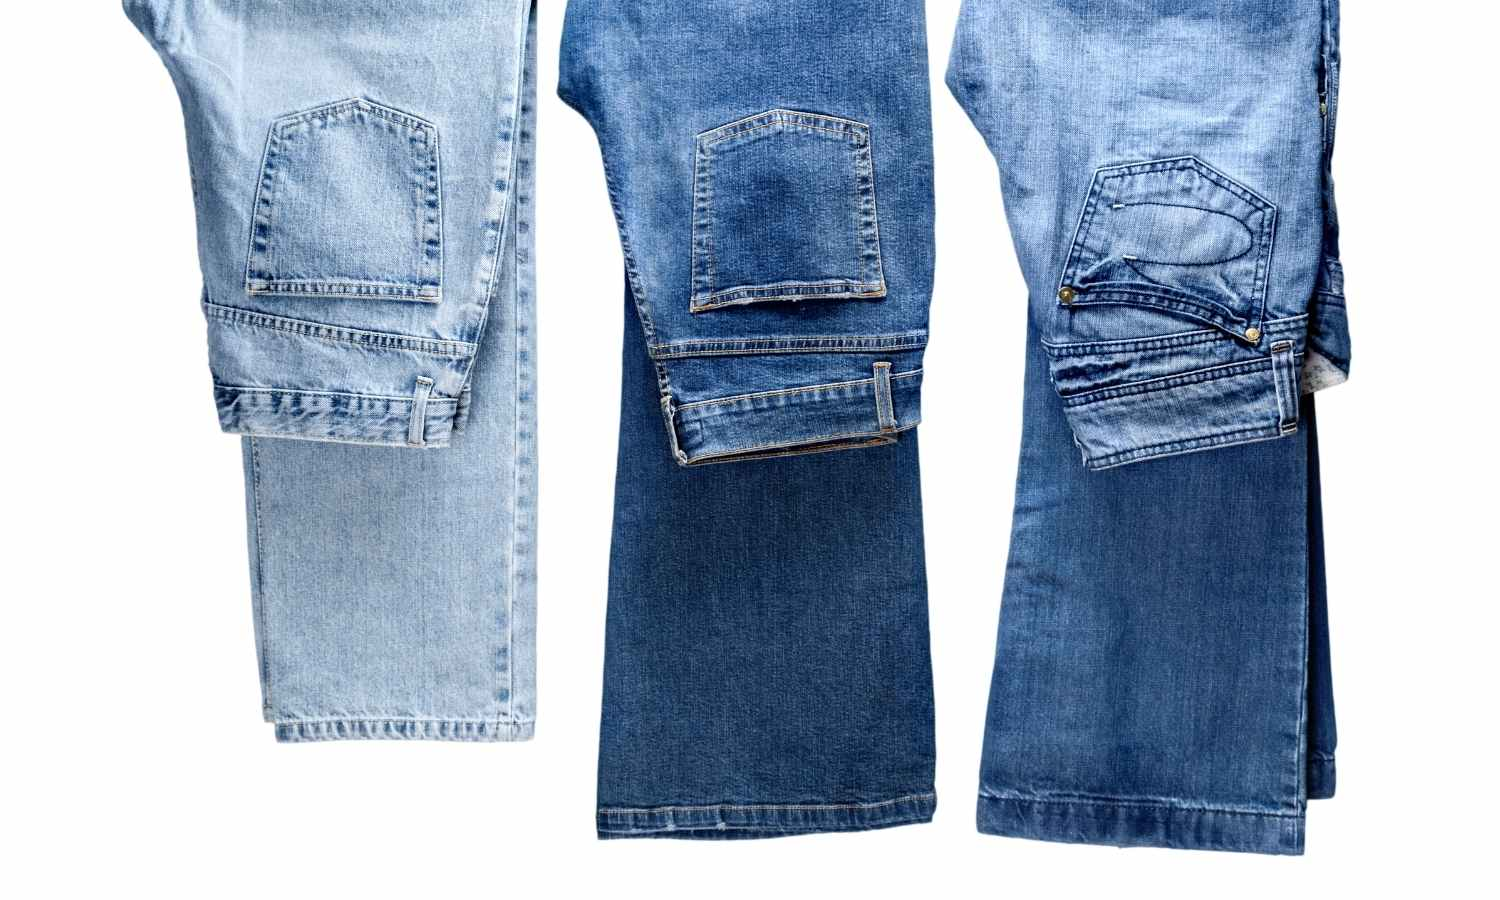 10 Best Work Jeans For Men and Women – From Casual to Construction